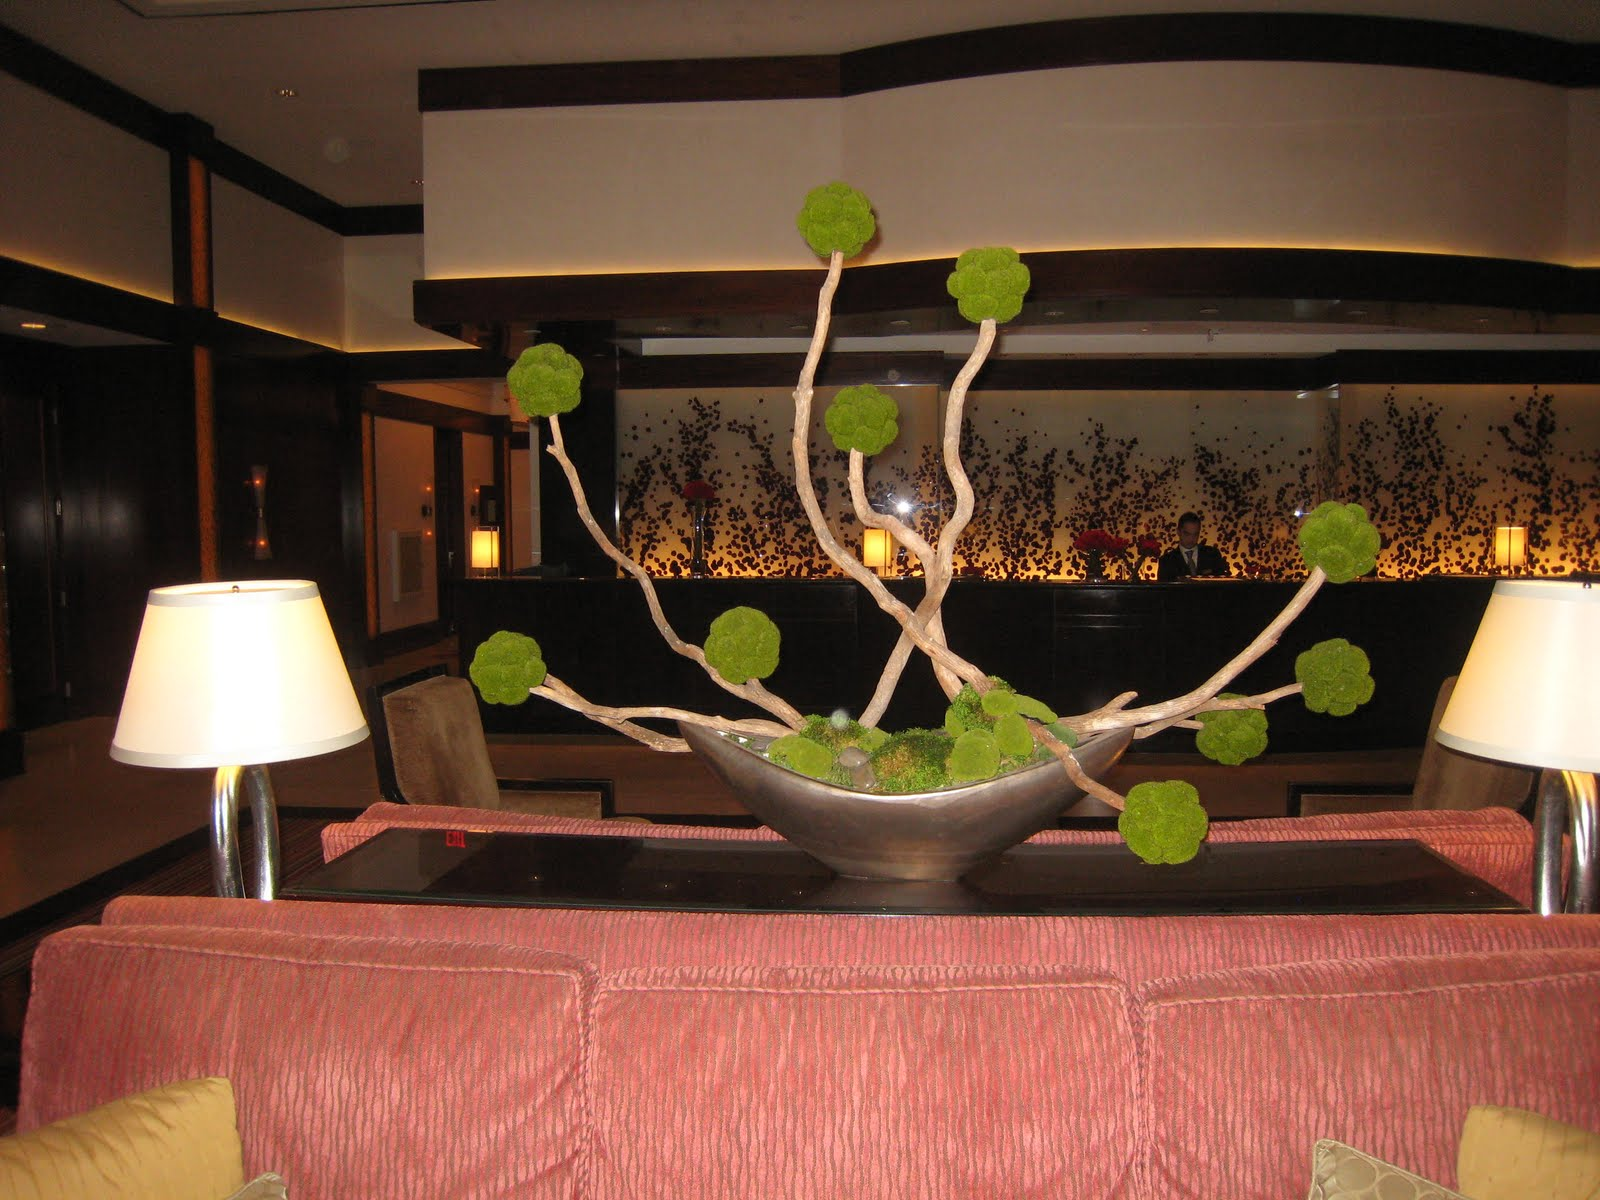 Modern hotel lobby centerpieces fearon may events for Modern centerpieces